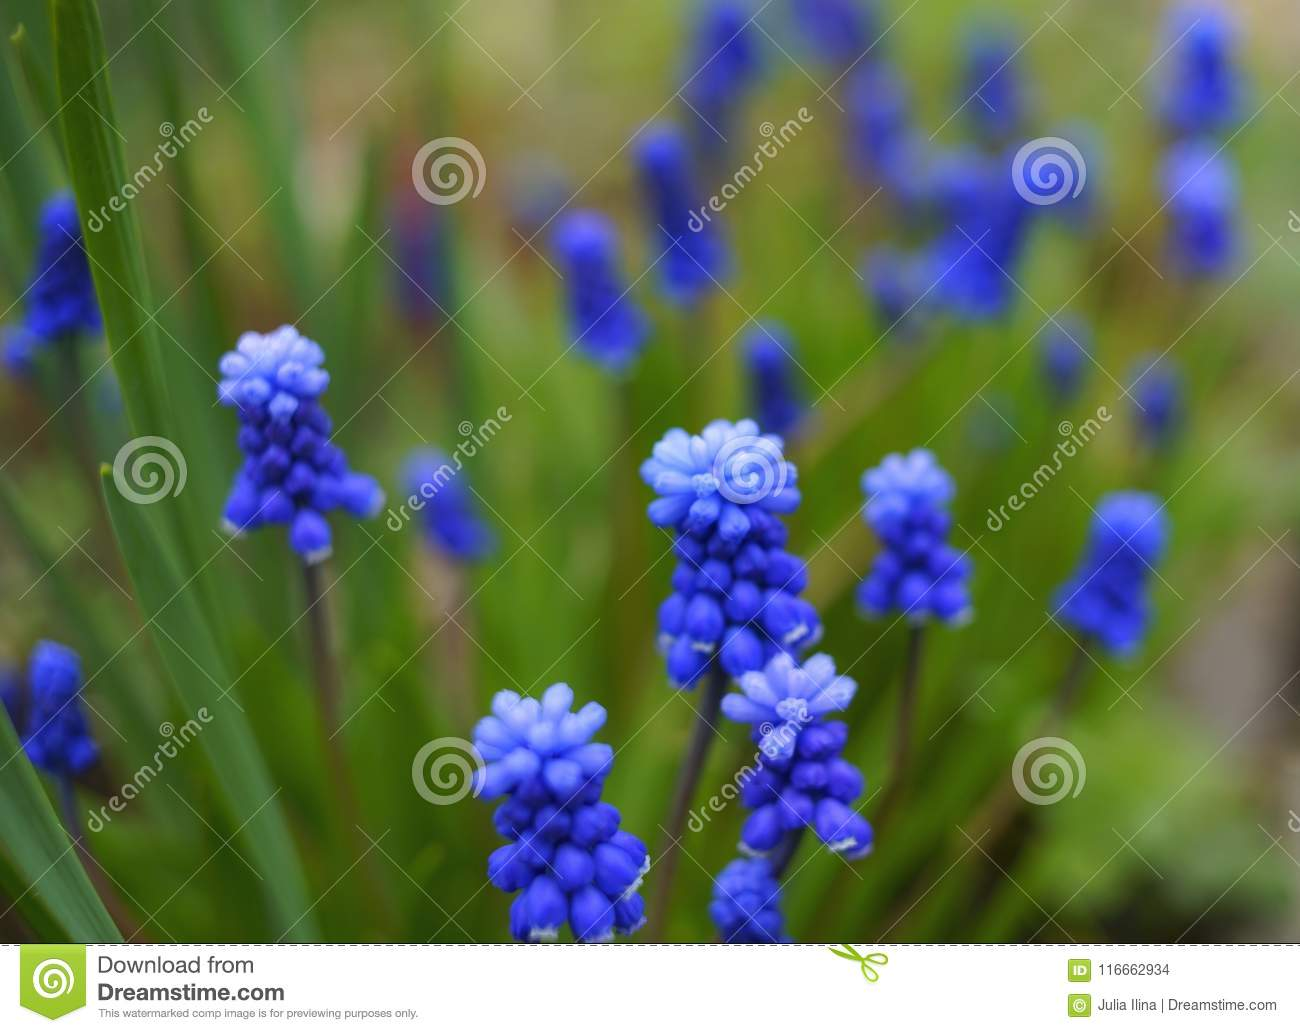 muscari hyacinth blue flower green leaf textured macro close-up outdoors nature garden day